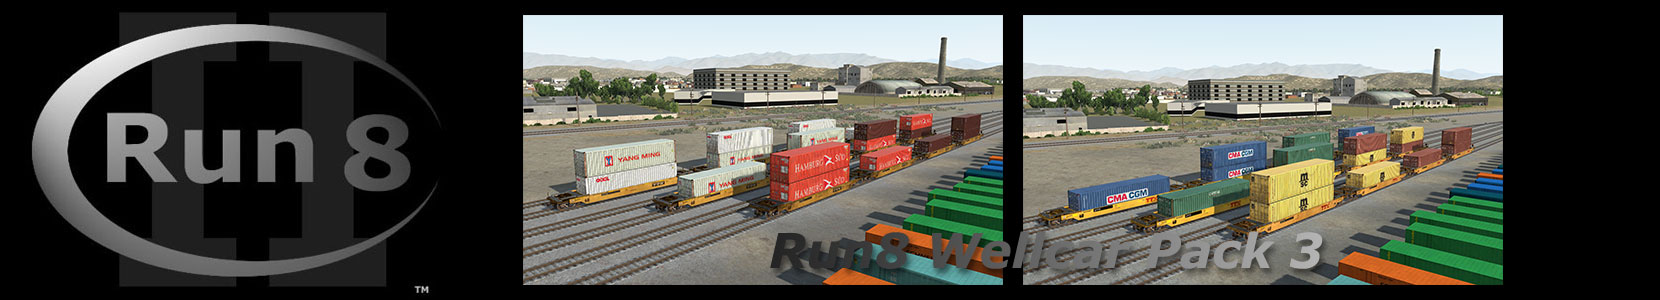 Run8 Train Simulator Wellcar Pack 3